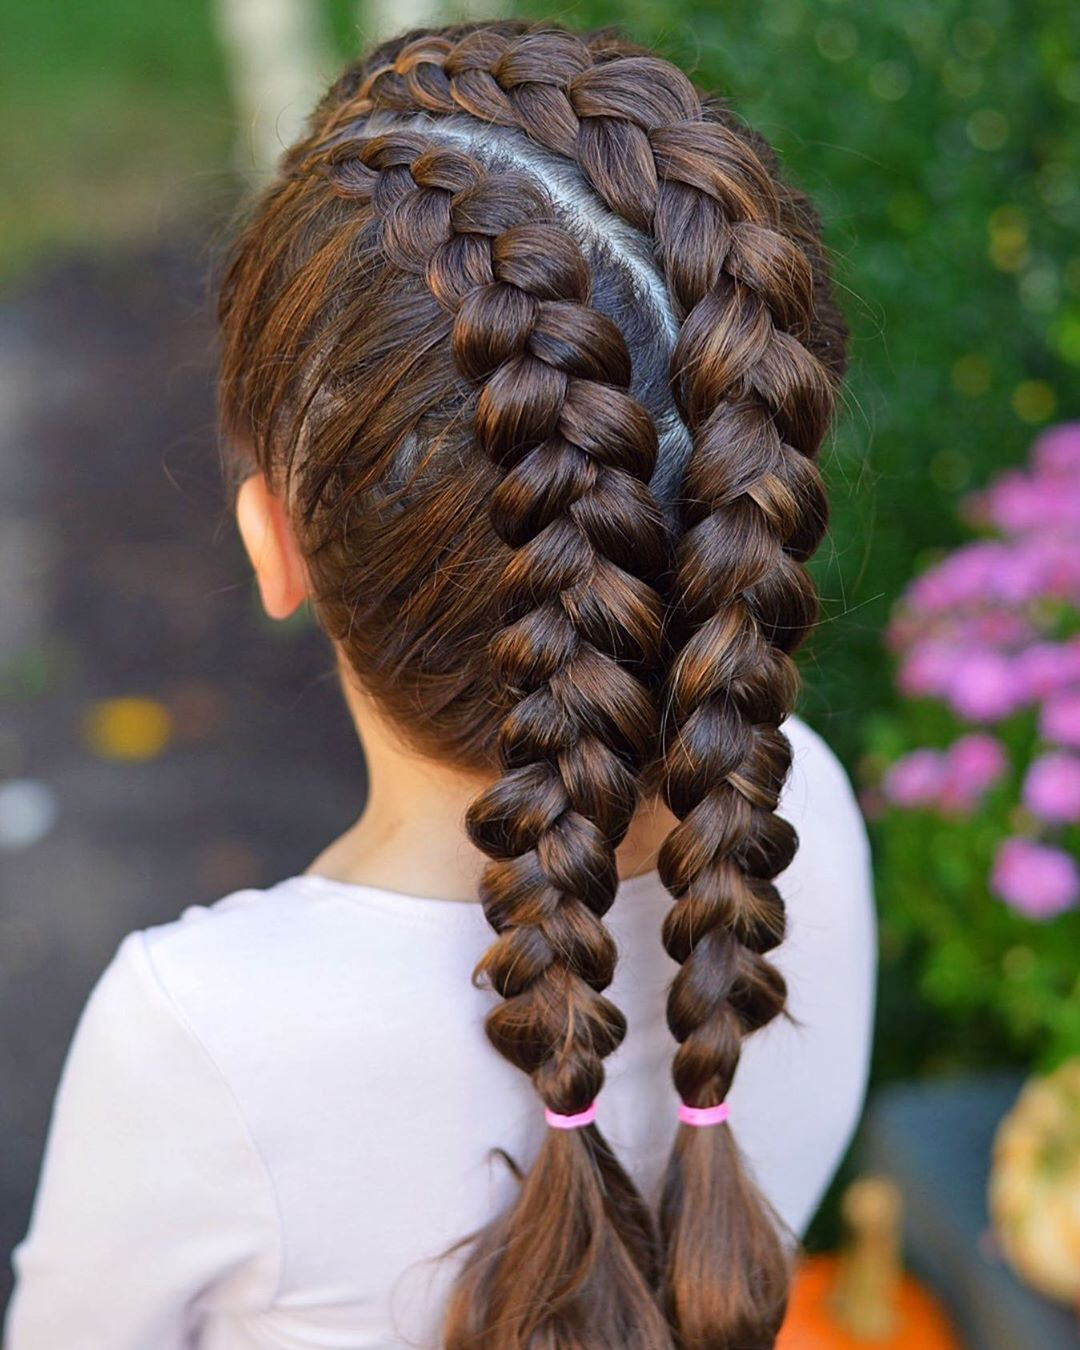 Dutch Braids With Curved Part Line. Have Braidstyles - Hair Ideas